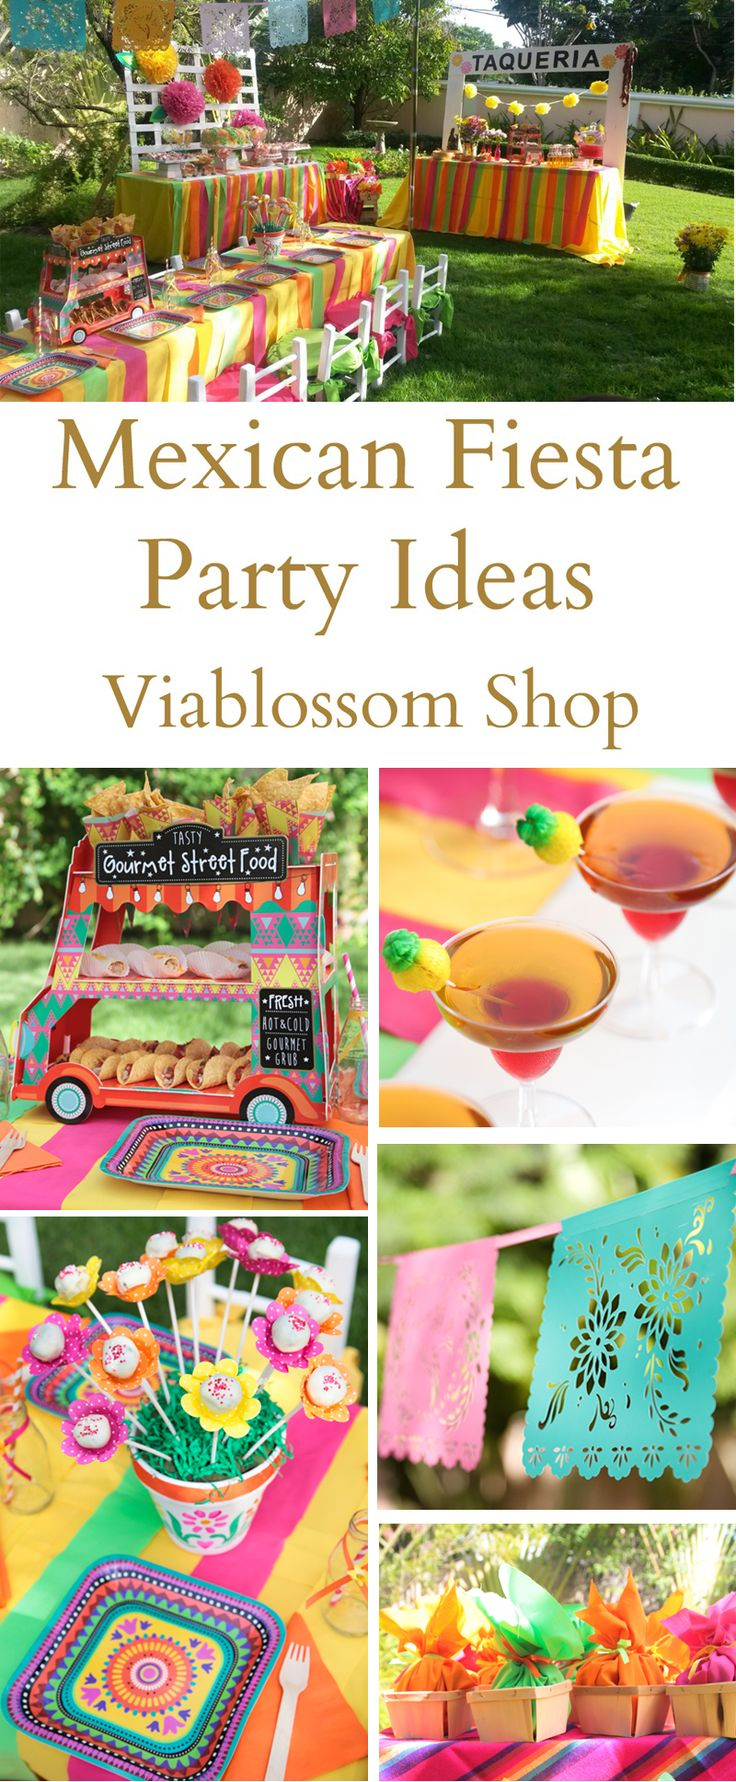 Mexican Fiesta Party Ideas for your Cinco de Mayo Party or Fiesta Party!  For more visit blog.viablossom.com